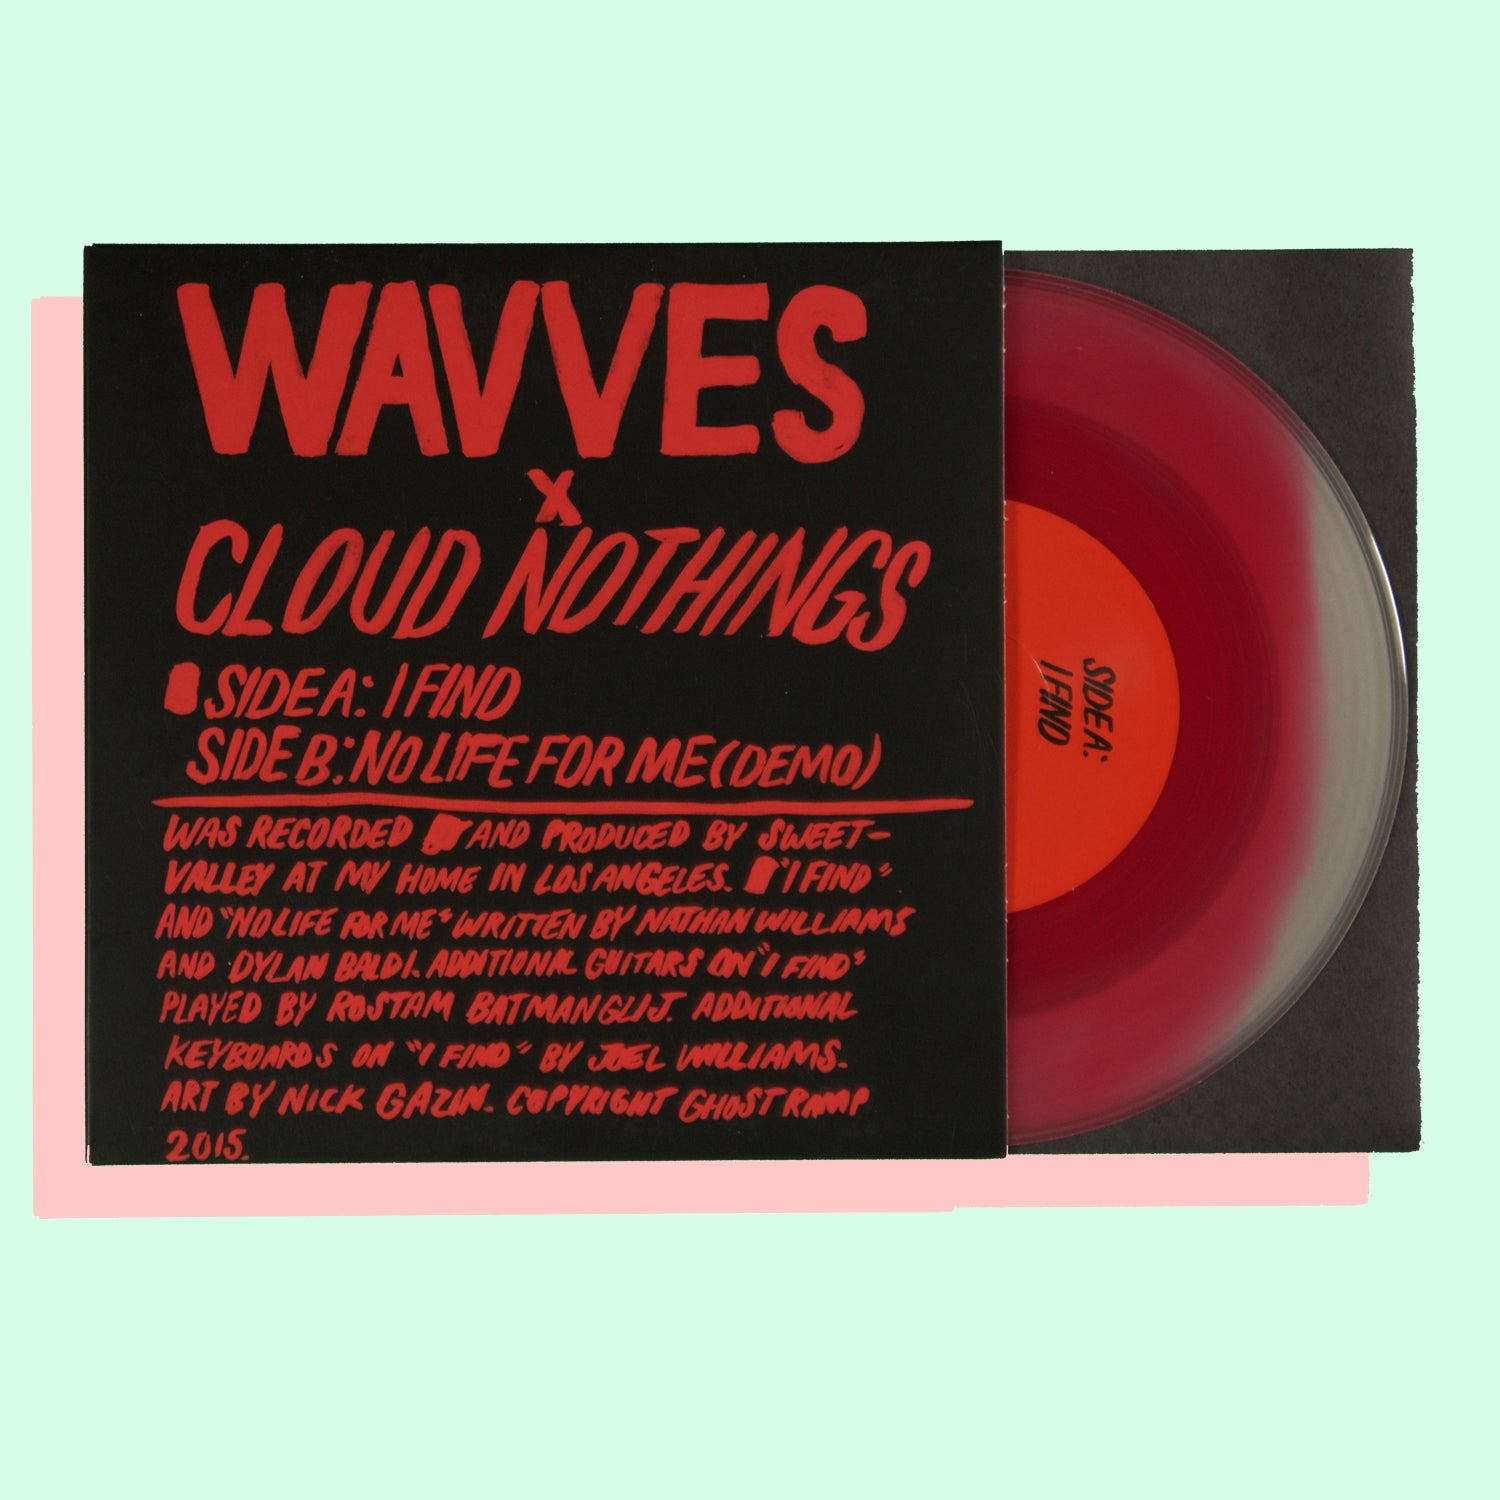 WAVVES x CLOUD NOTHINGS - I FIND 7